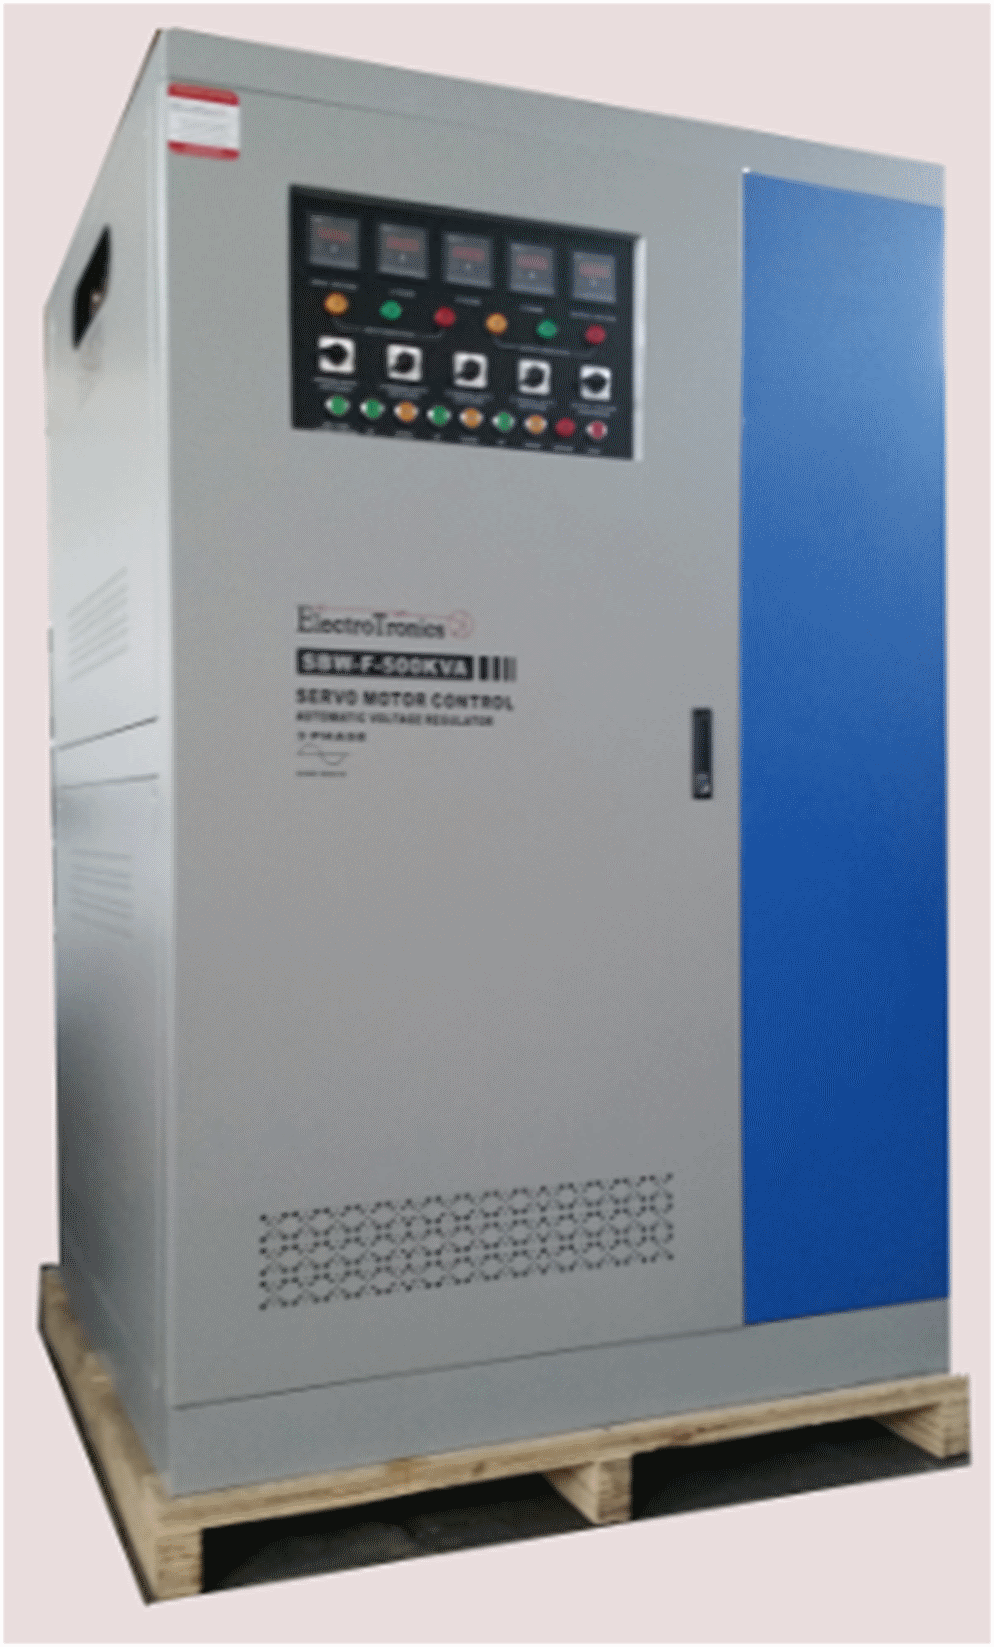 Automatic Voltage Regulator Avr Products Zimbabwe Power Circuit Stabilizer Heavy Duty Industrial Type Bw F